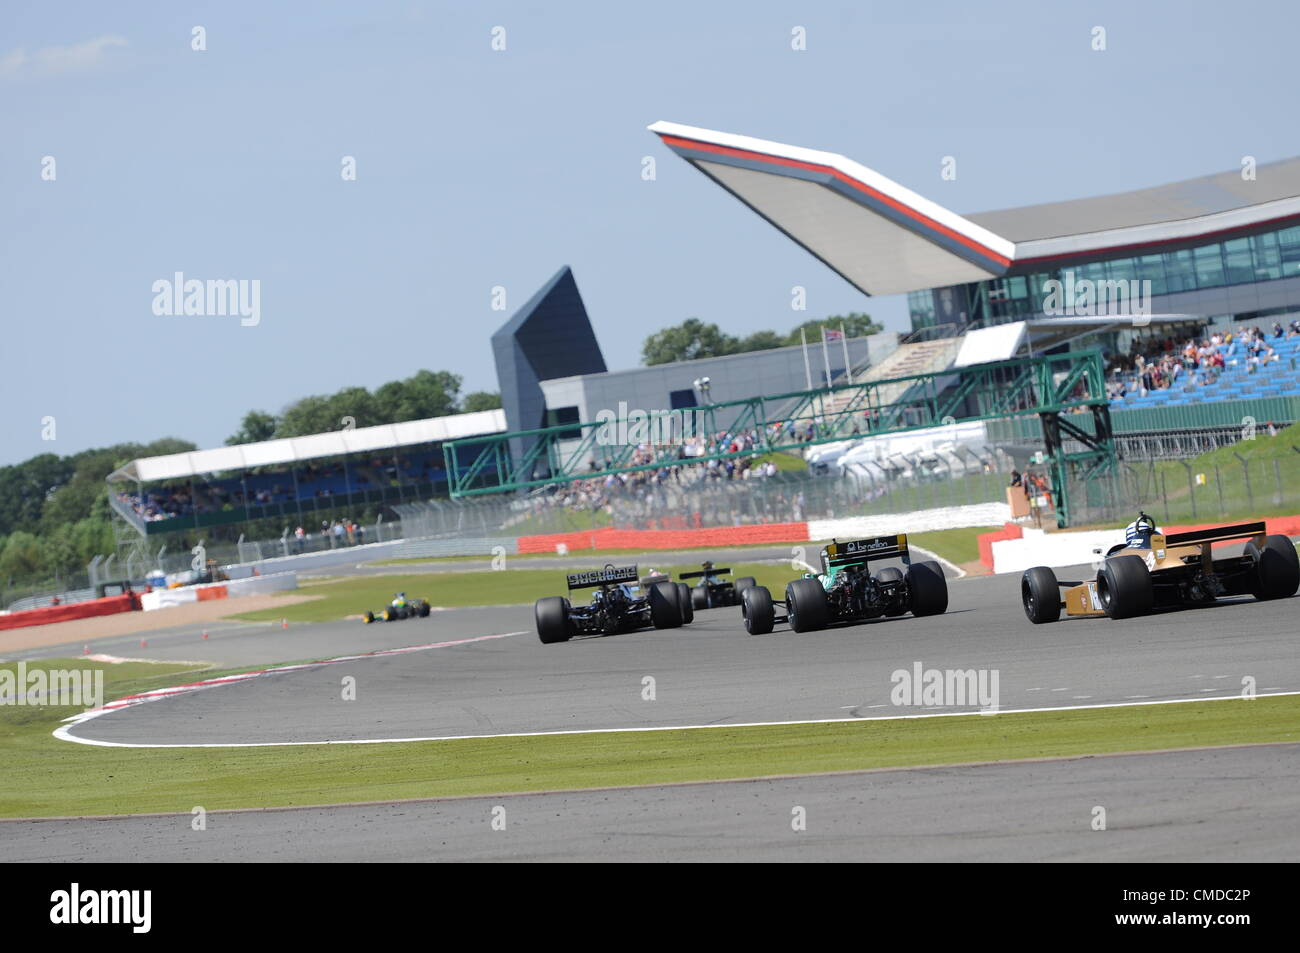 22nd July 2012, Silverstone, UK. The historic F1 cars race for position during the Daily Express International Trophy - Stock Image